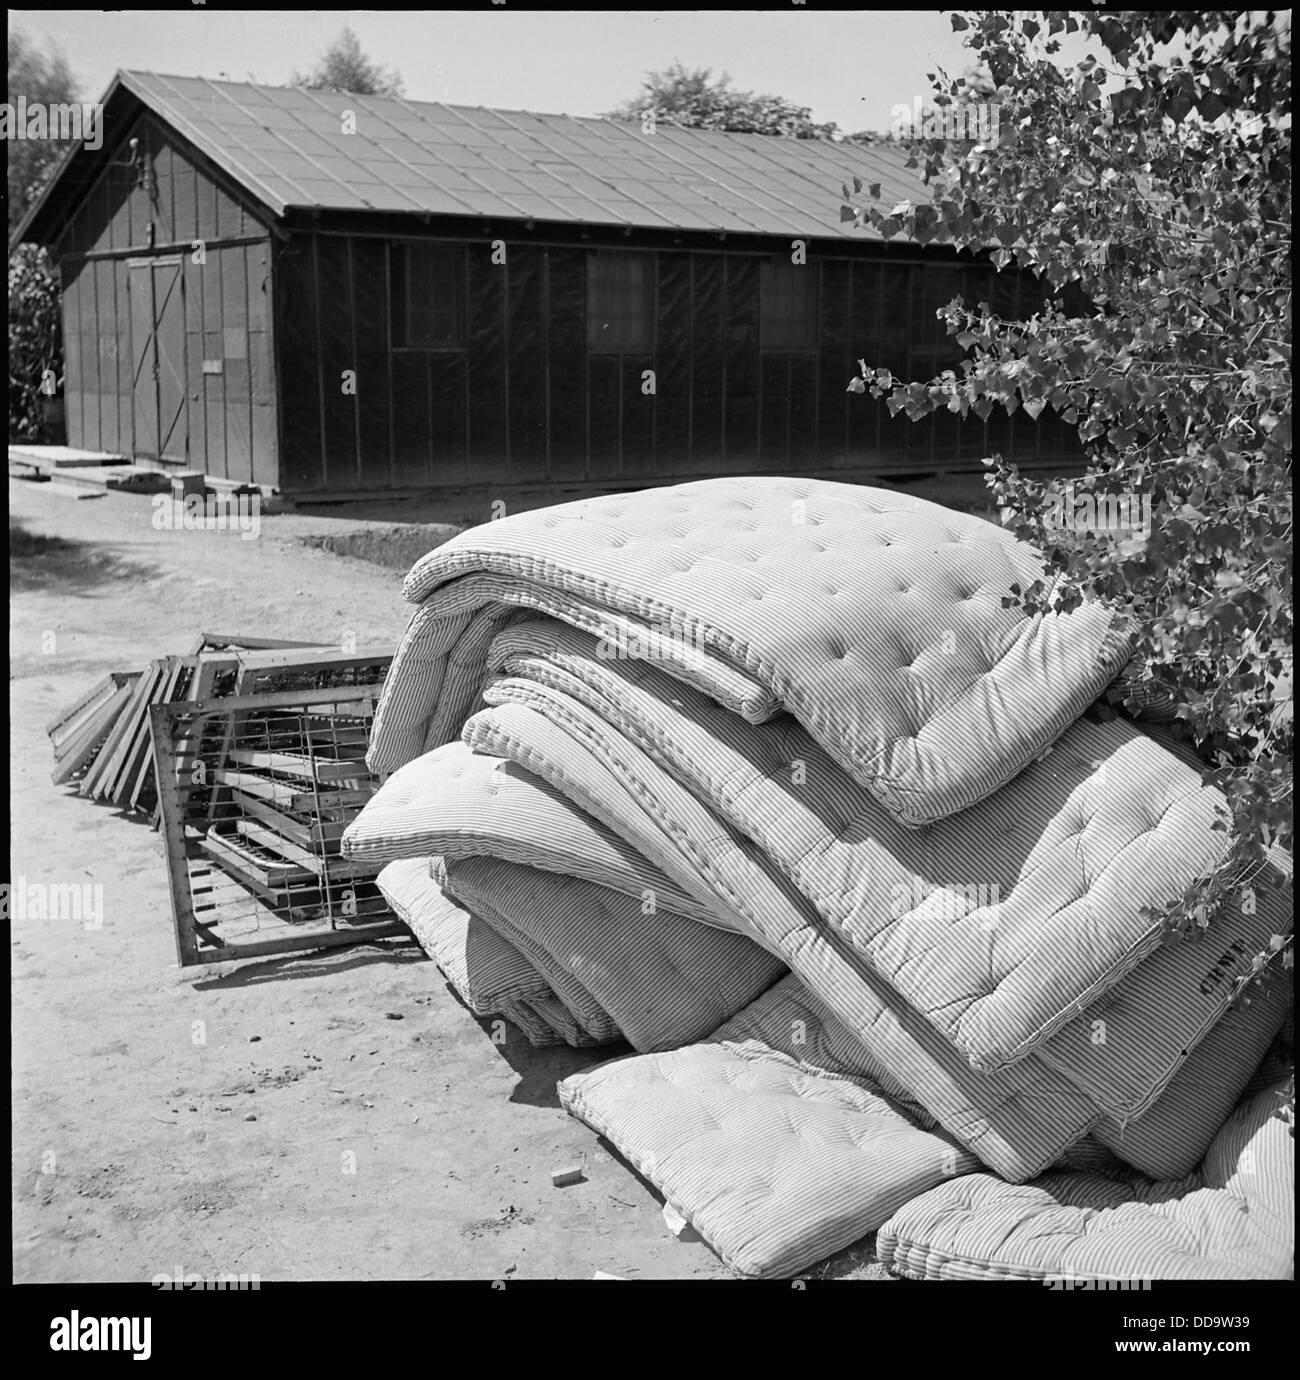 Poston, Arizona. Mattresses no longer needed by block residents are piled in the middle of the bloc . . . - - 539867 - Stock Image